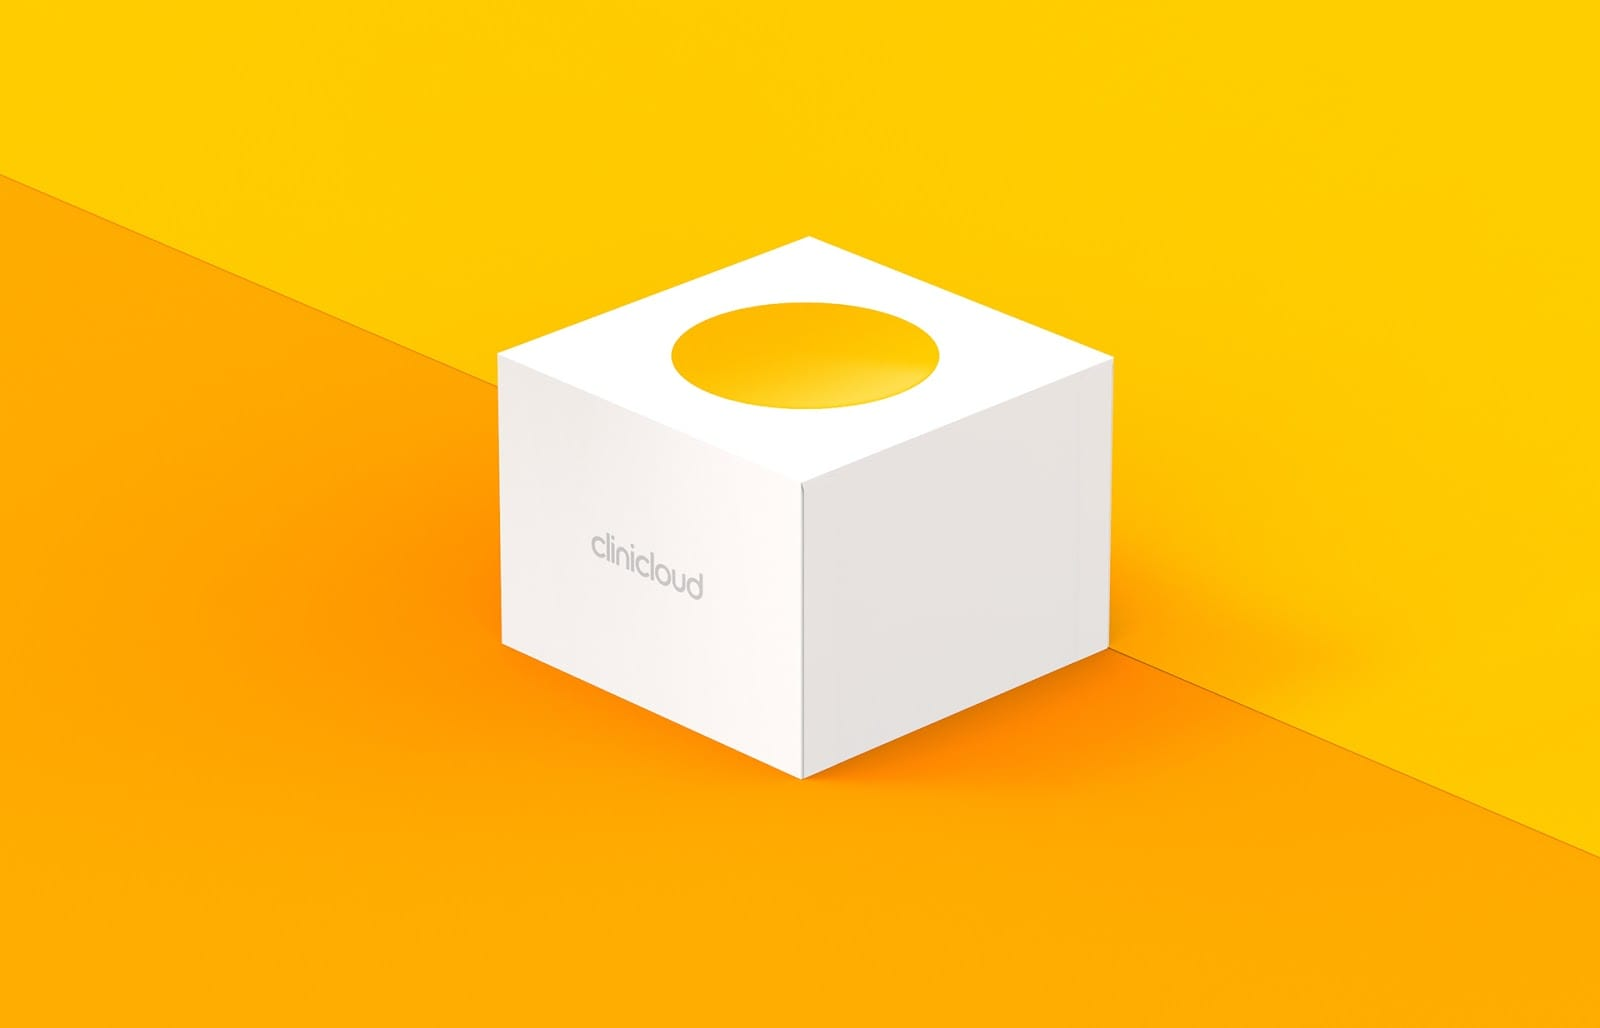 CliniCloud Packaging 03 - Ach, tie obaly – CliniCloud